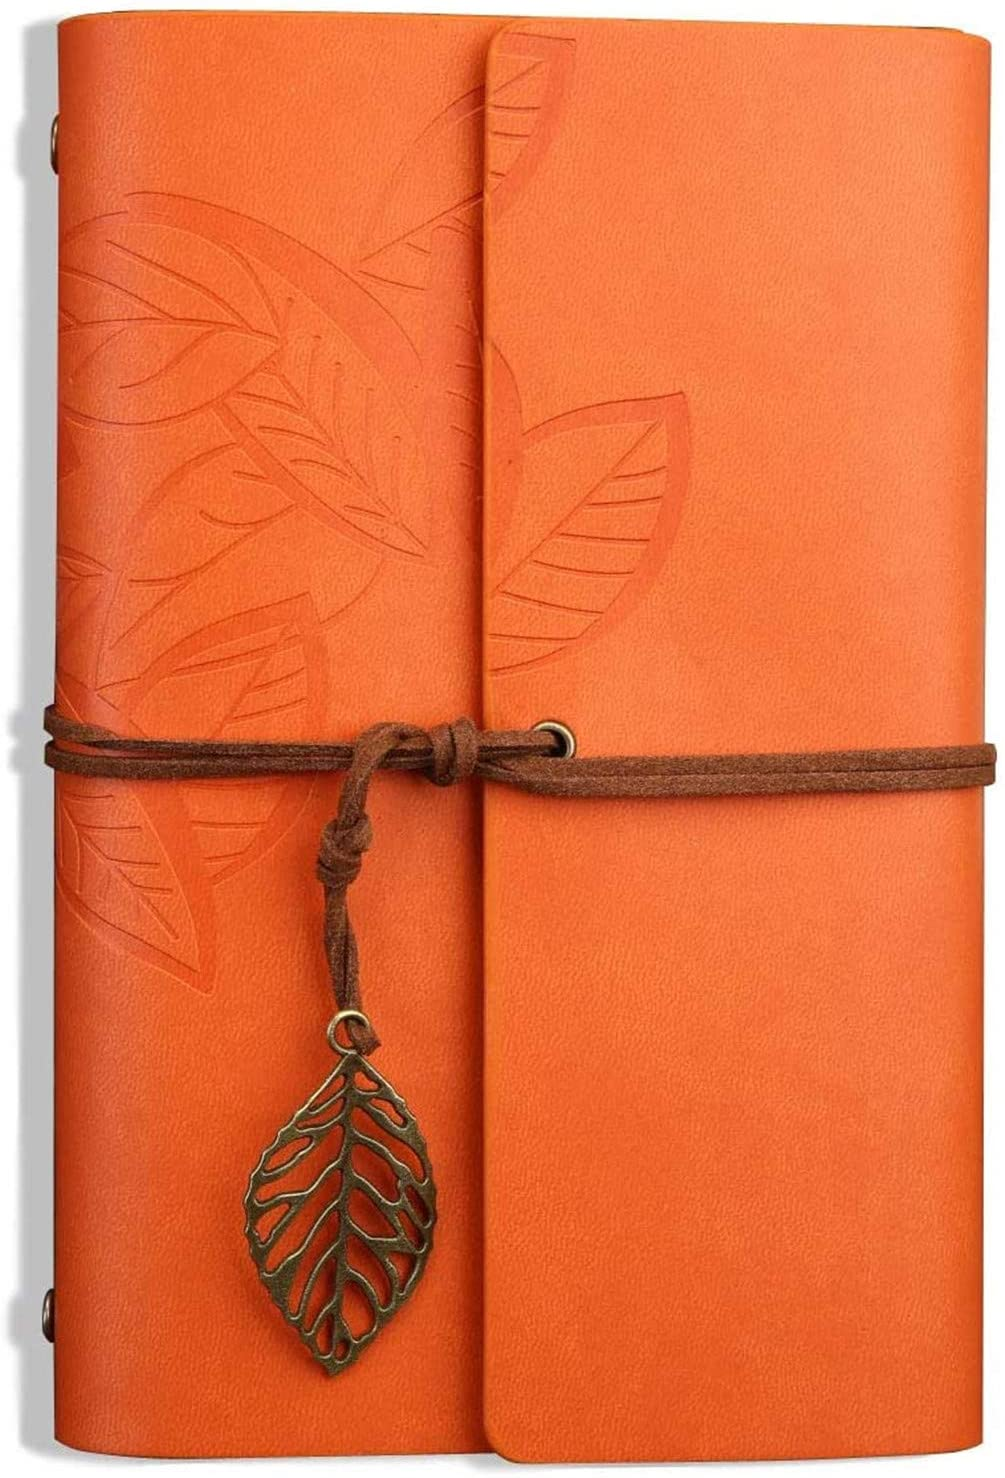 Retro Leaves Pendants PU Leather Cover Loose Leaf Blank Writing Journal Notebook Diary Gift (Orange, A6(7 inch))